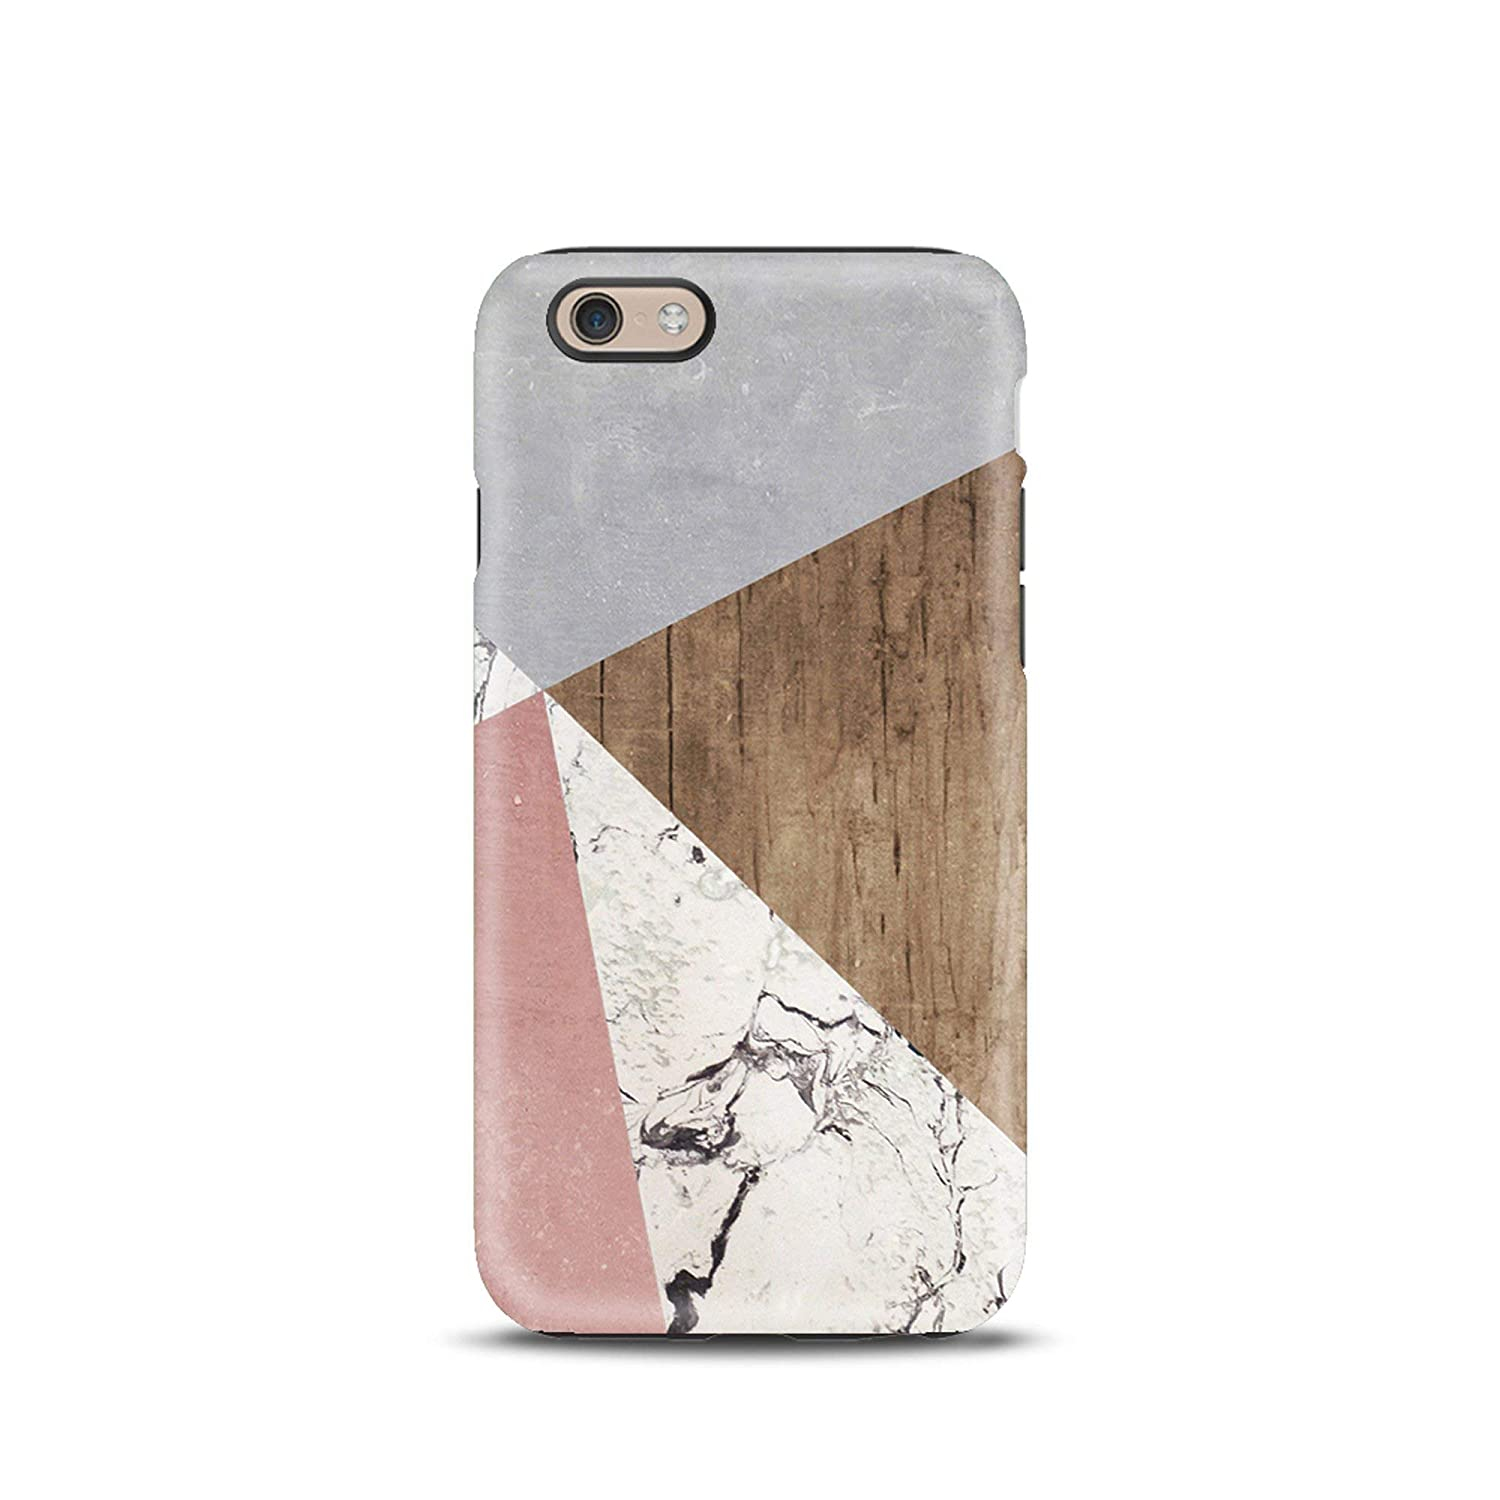 Geometric Color Block Marble Wood cover case TPU Tough for iPhone 5, 5s, 6, 6s, 7, 7 plus, 8, 8 plus, X, XS, for Galaxy S6, S7, S8